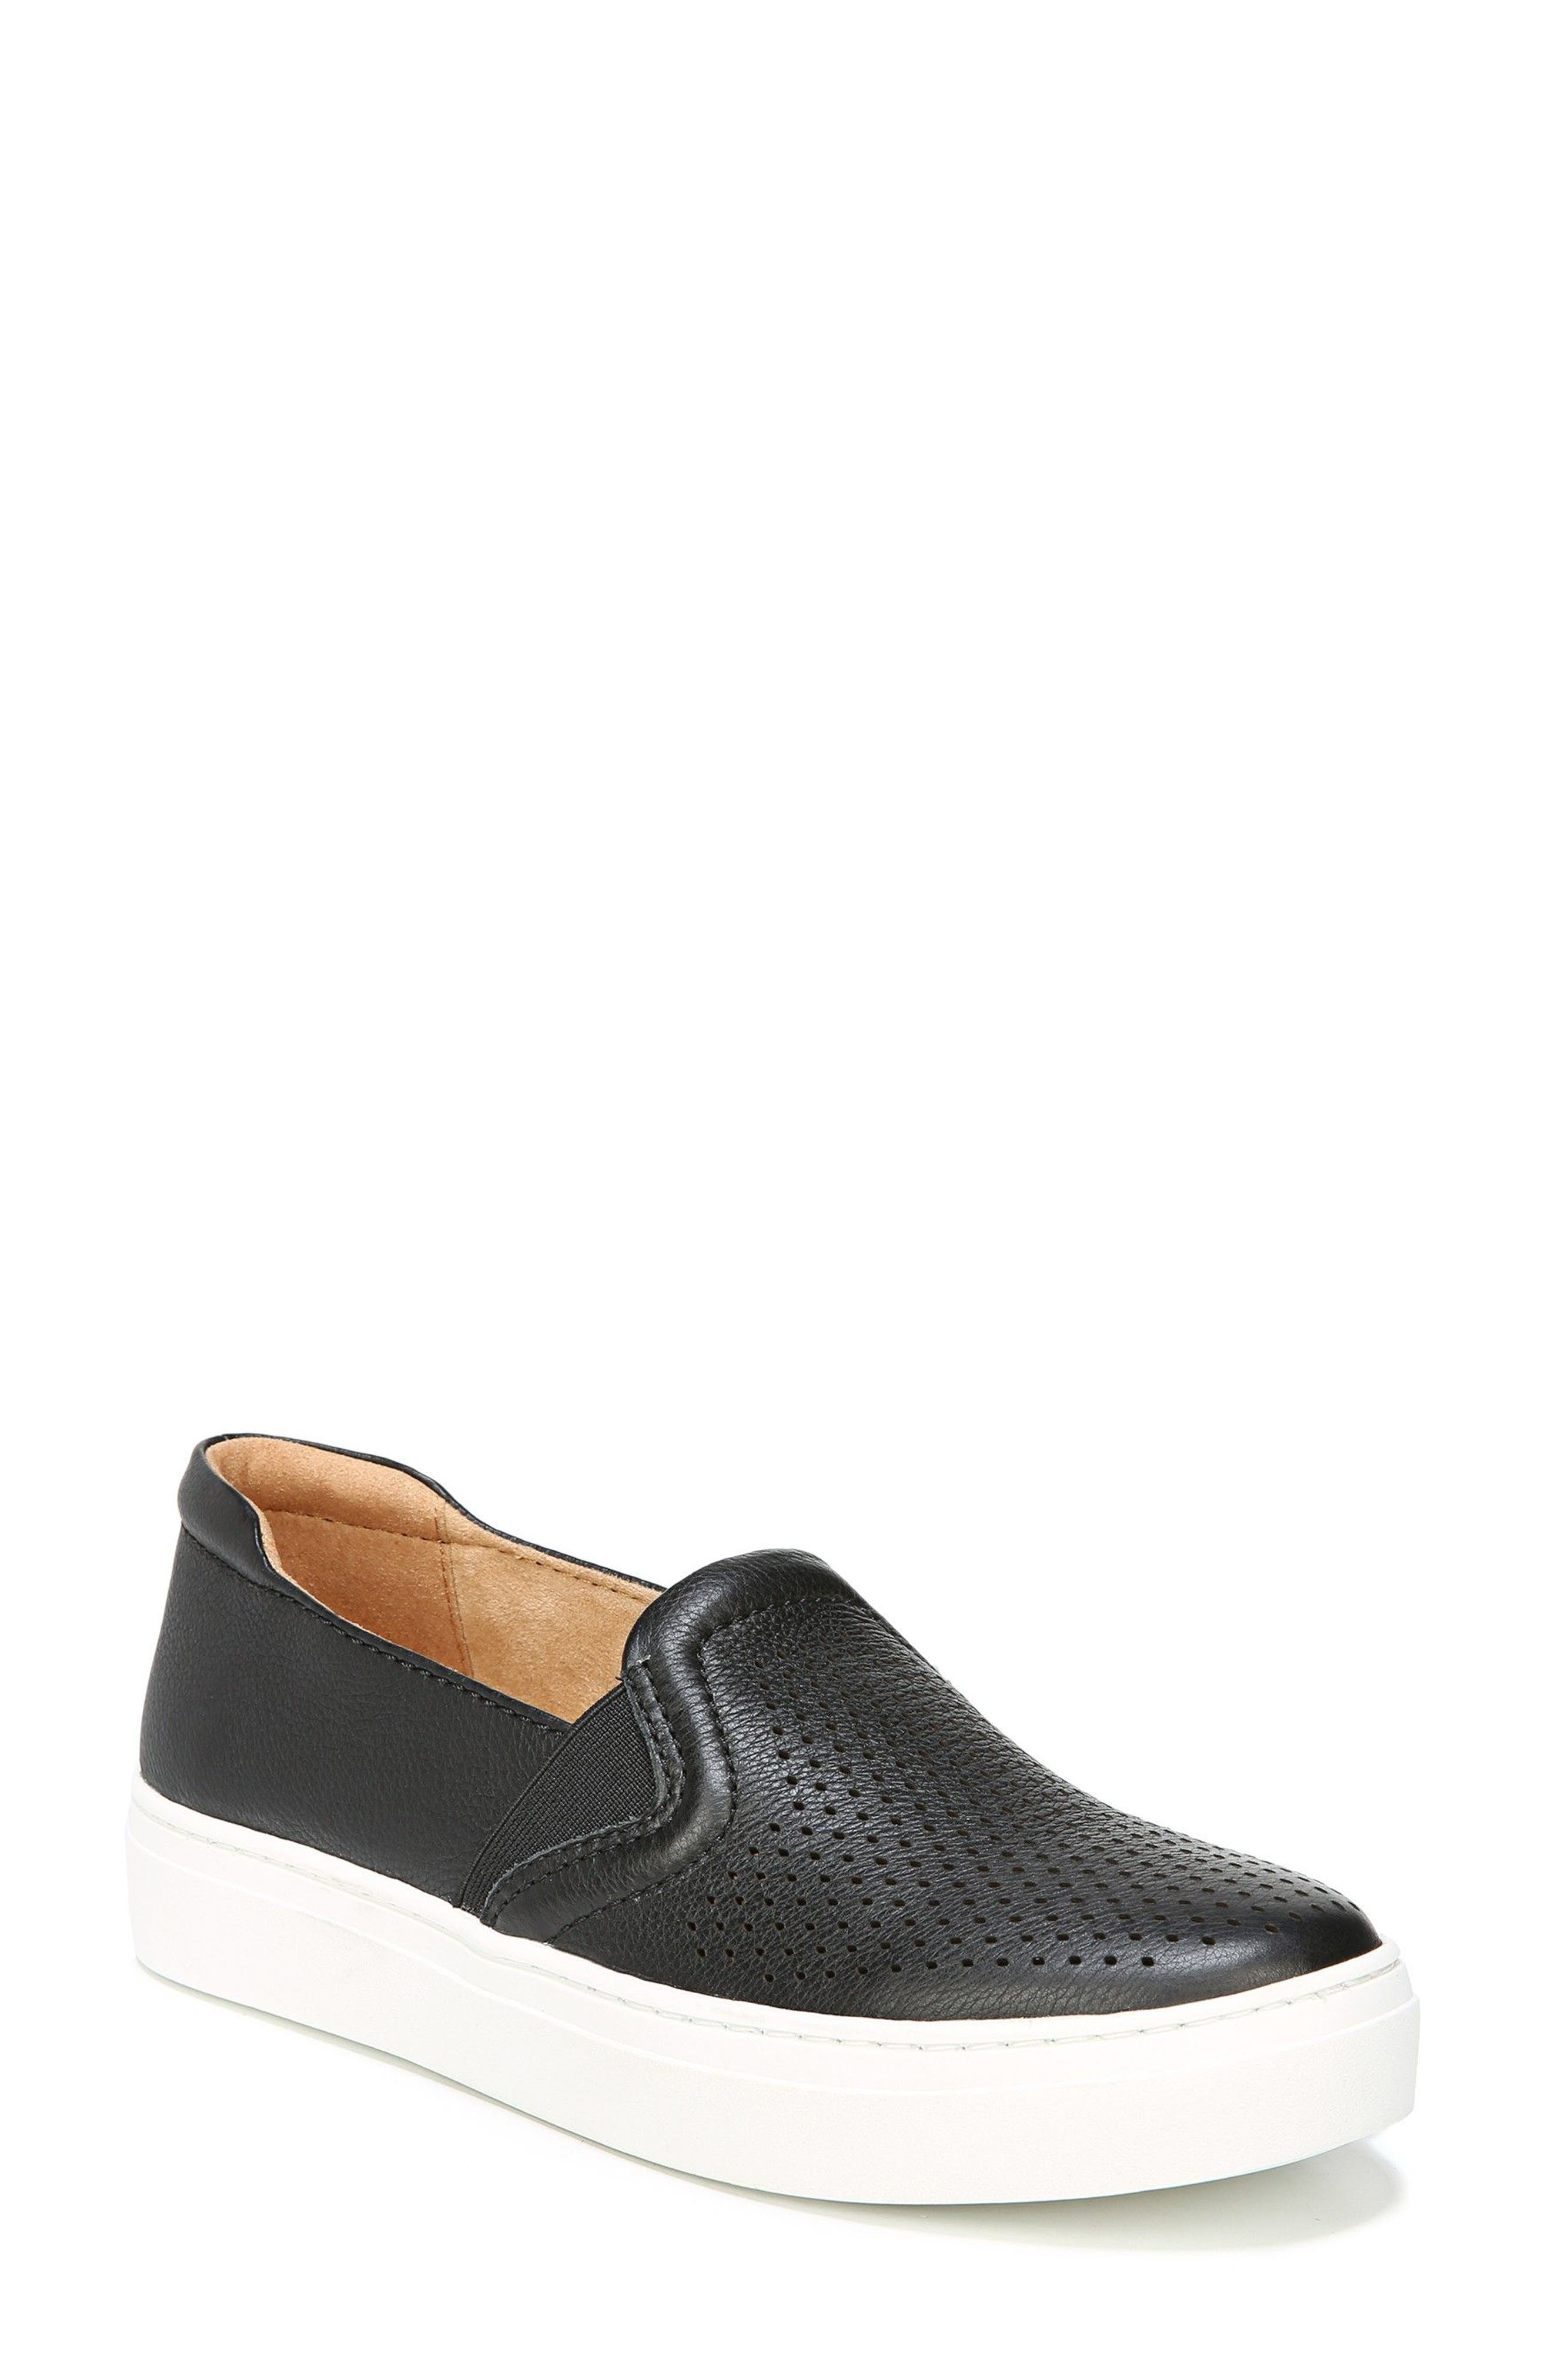 Carly Slip-On Sneaker,                         Main,                         color, BLACK PEBBLED LEATHER